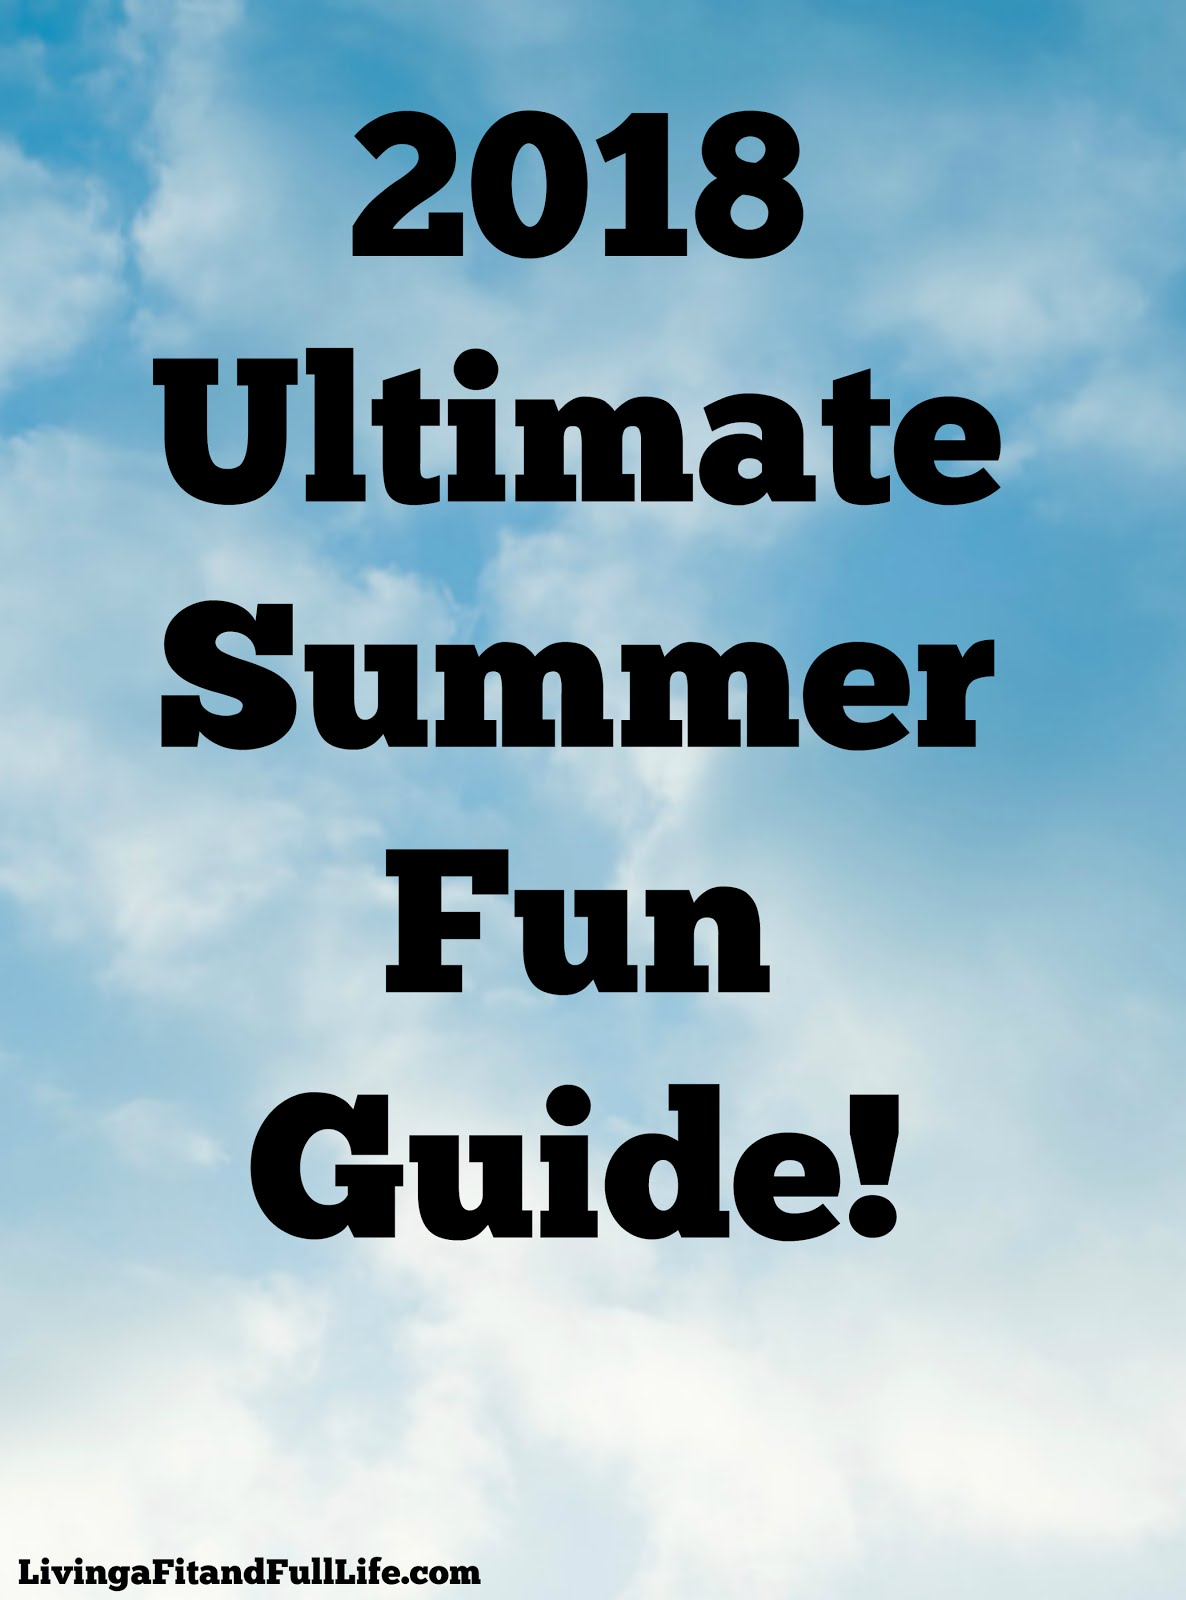 2018 Ultimate Summer Fun Guide!